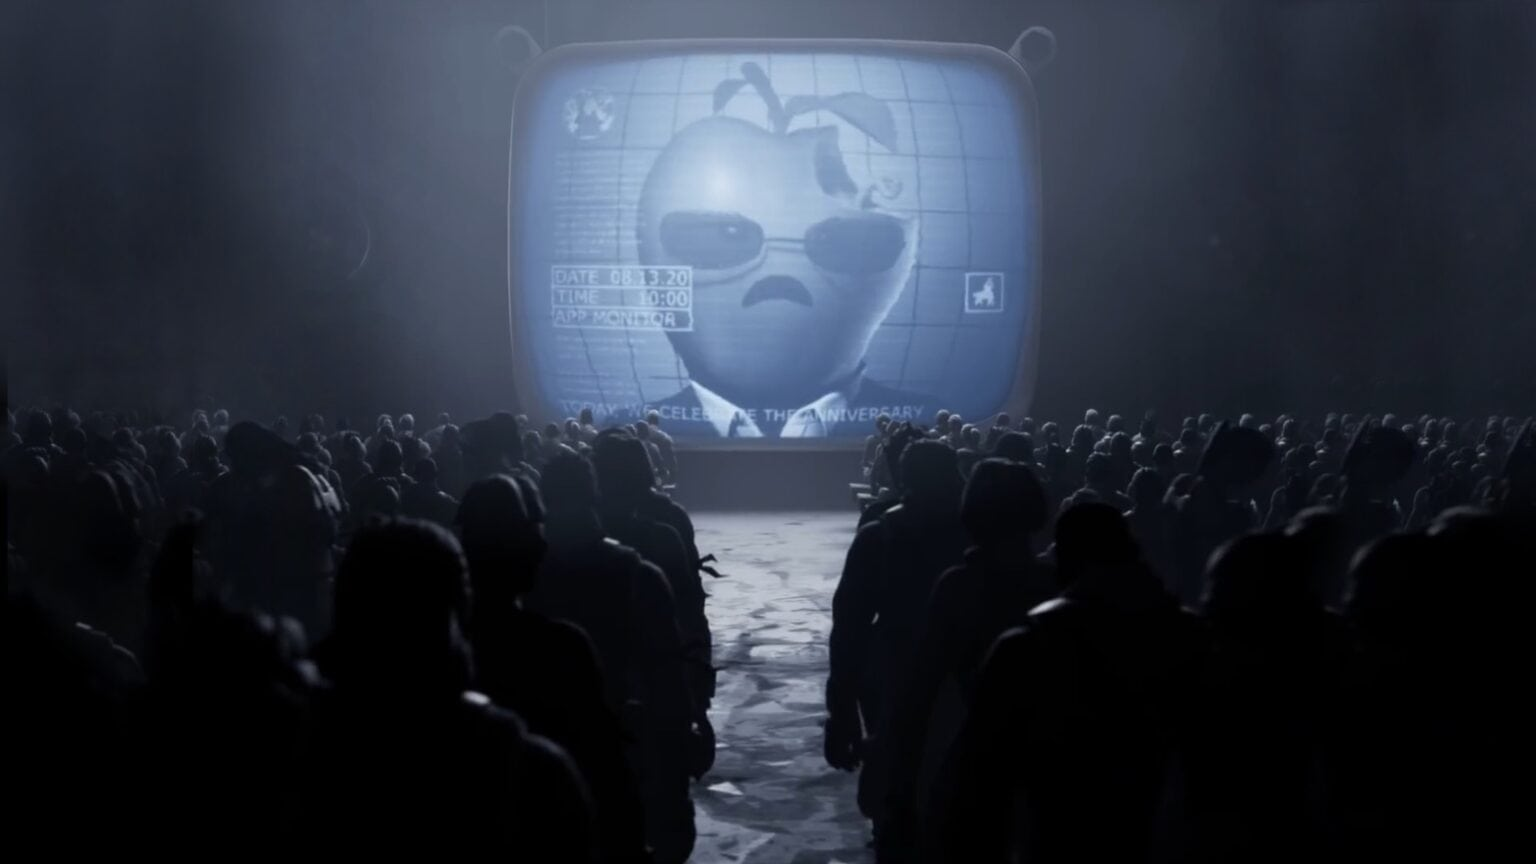 Epic Games mocked Apple with a '1984' parody.